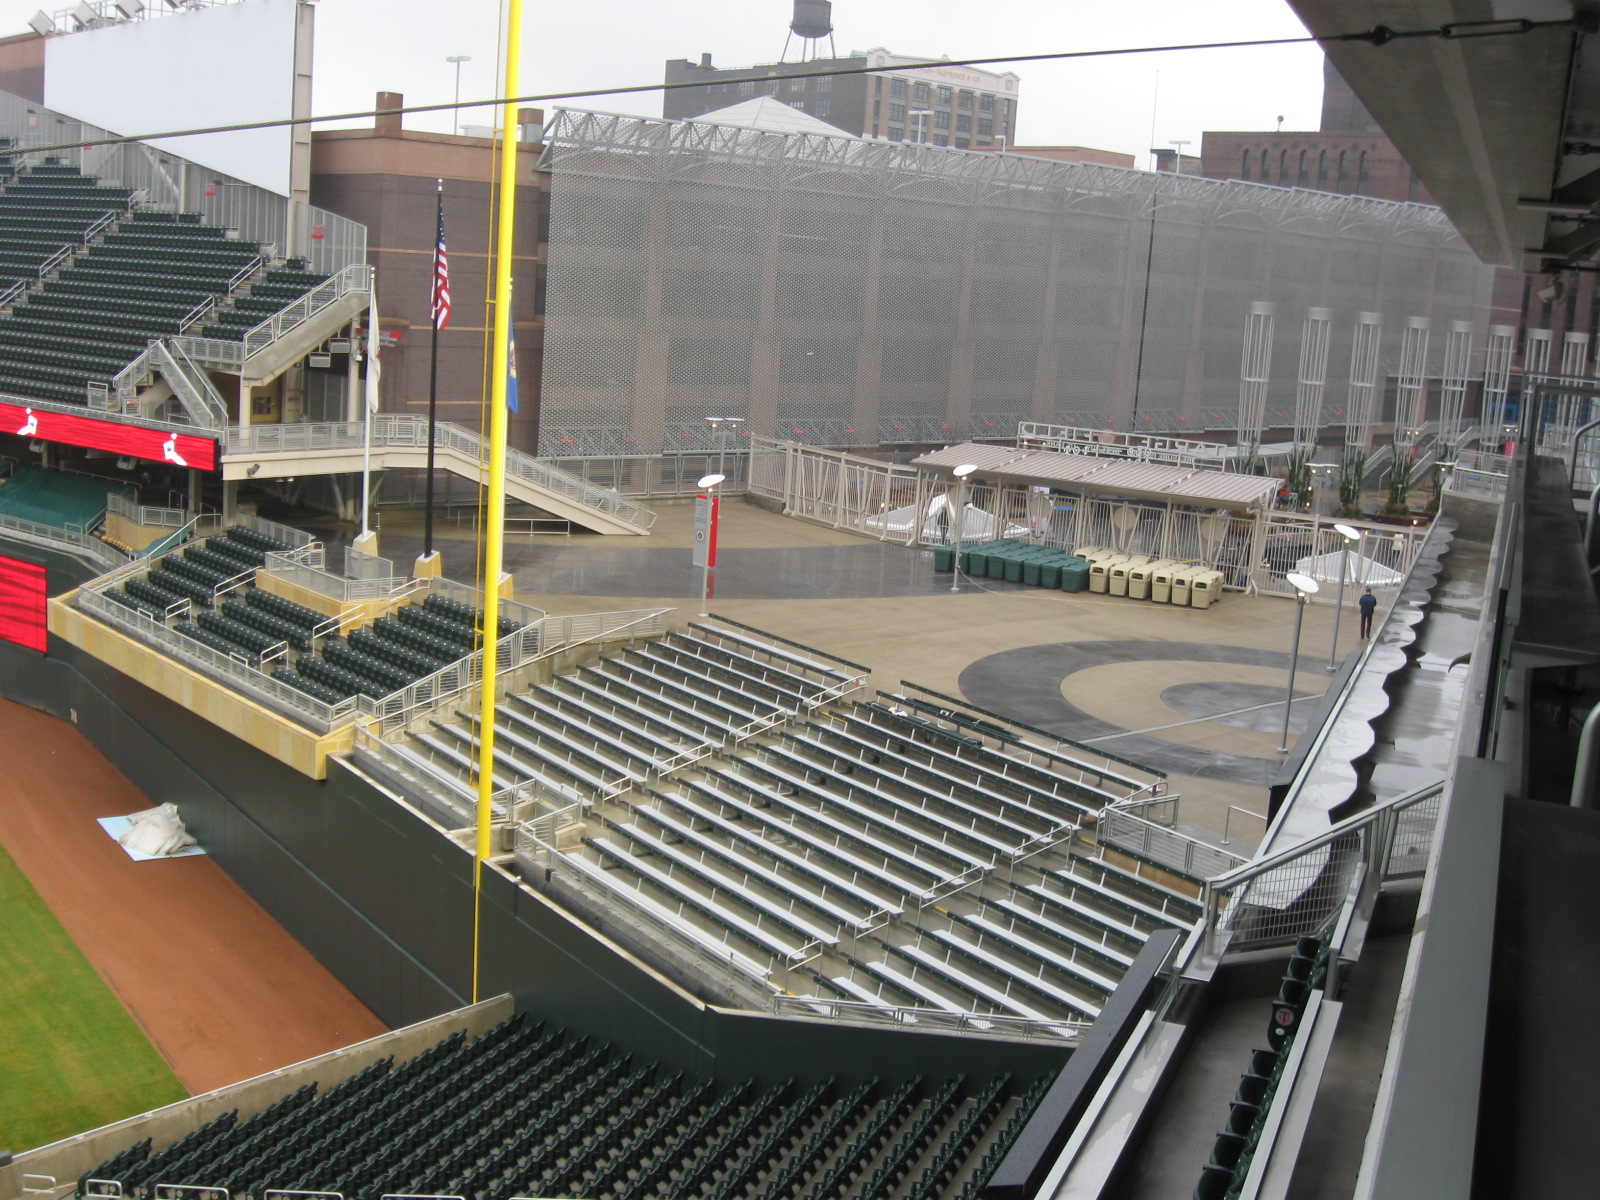 target field pictures. Target Field 11